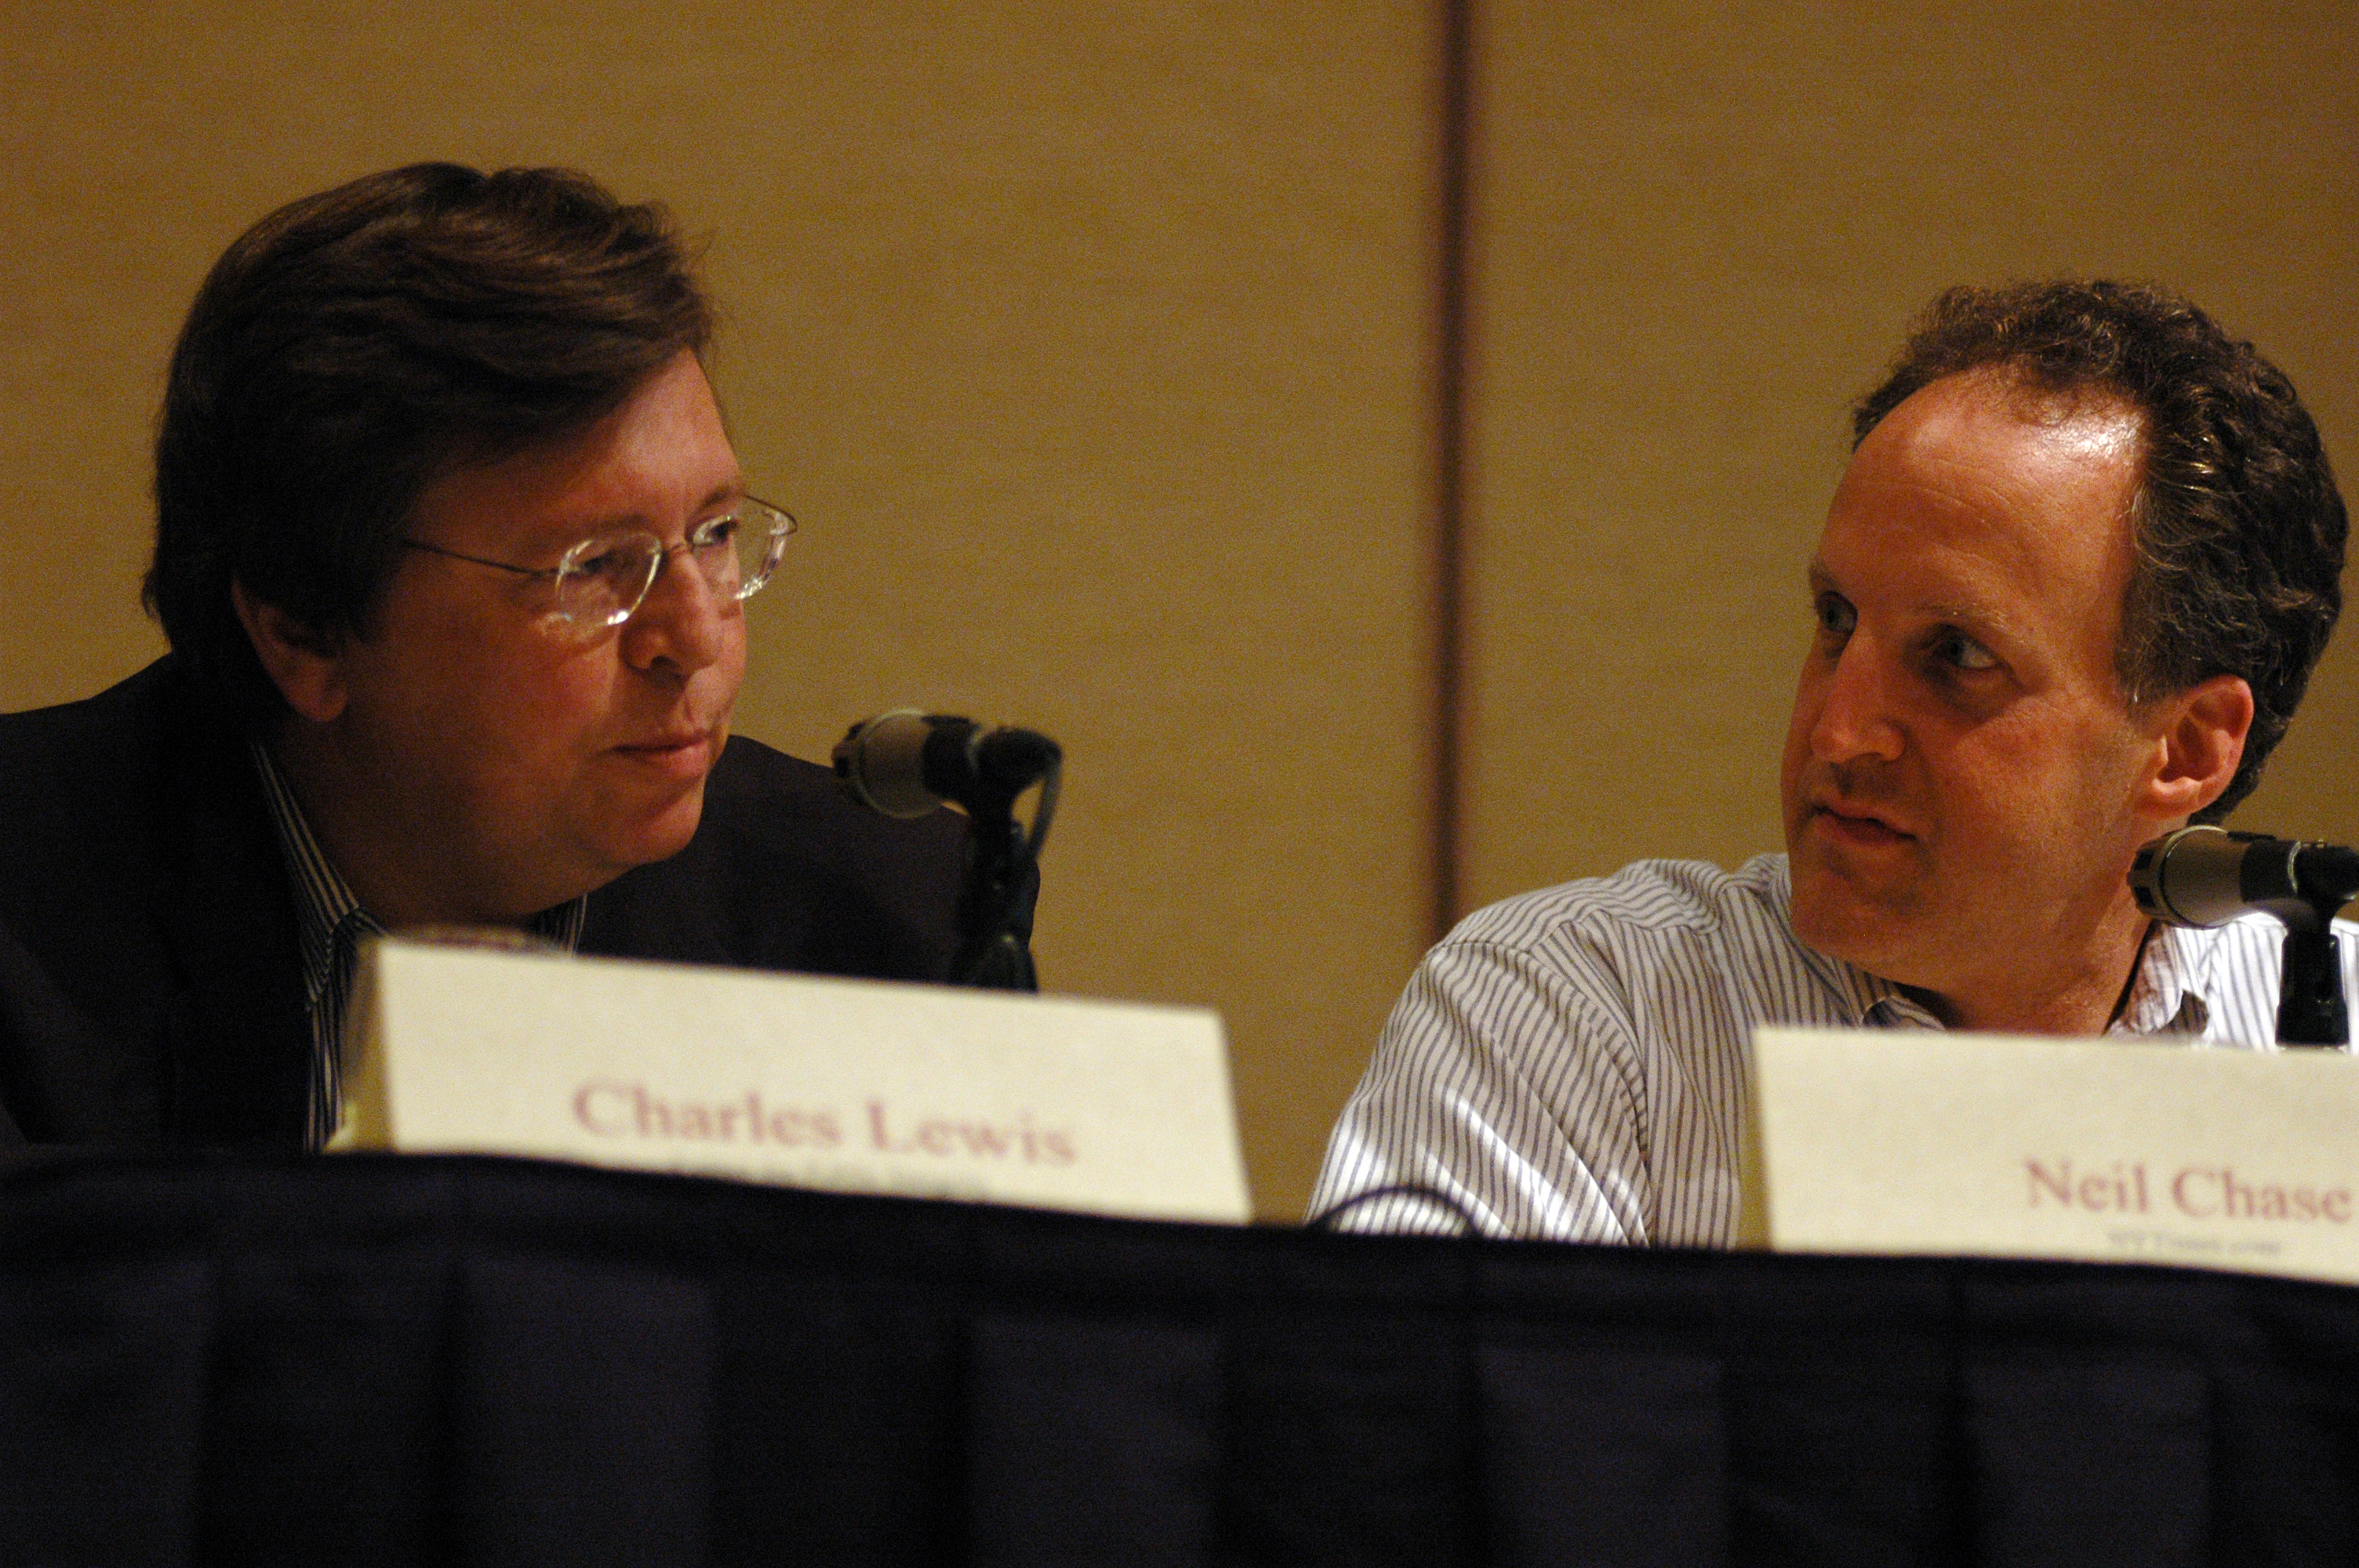 Charles Lewis and Neil Chase